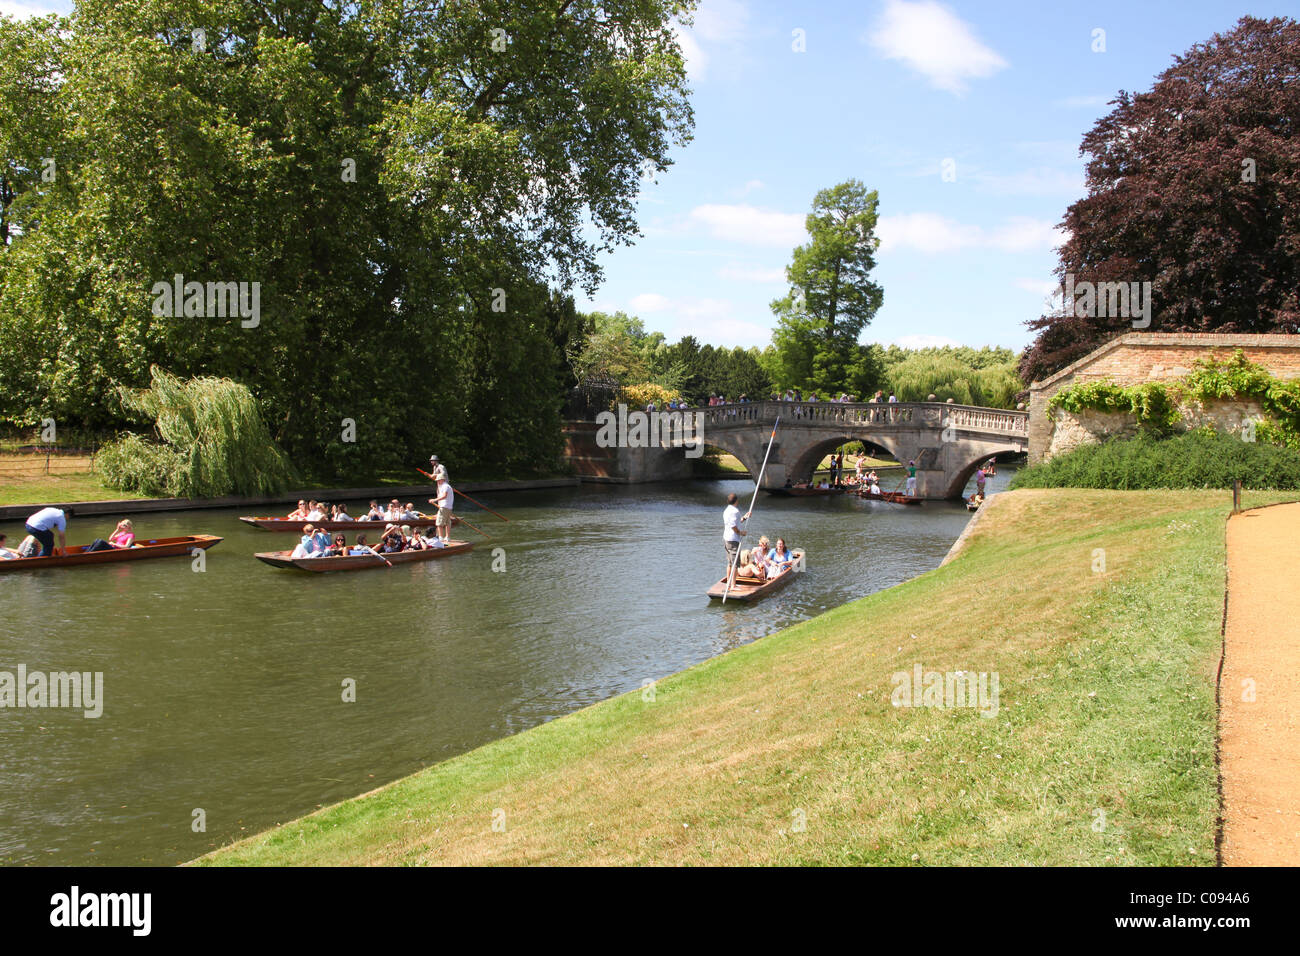 Punters with tourists in Cambridge - Stock Image